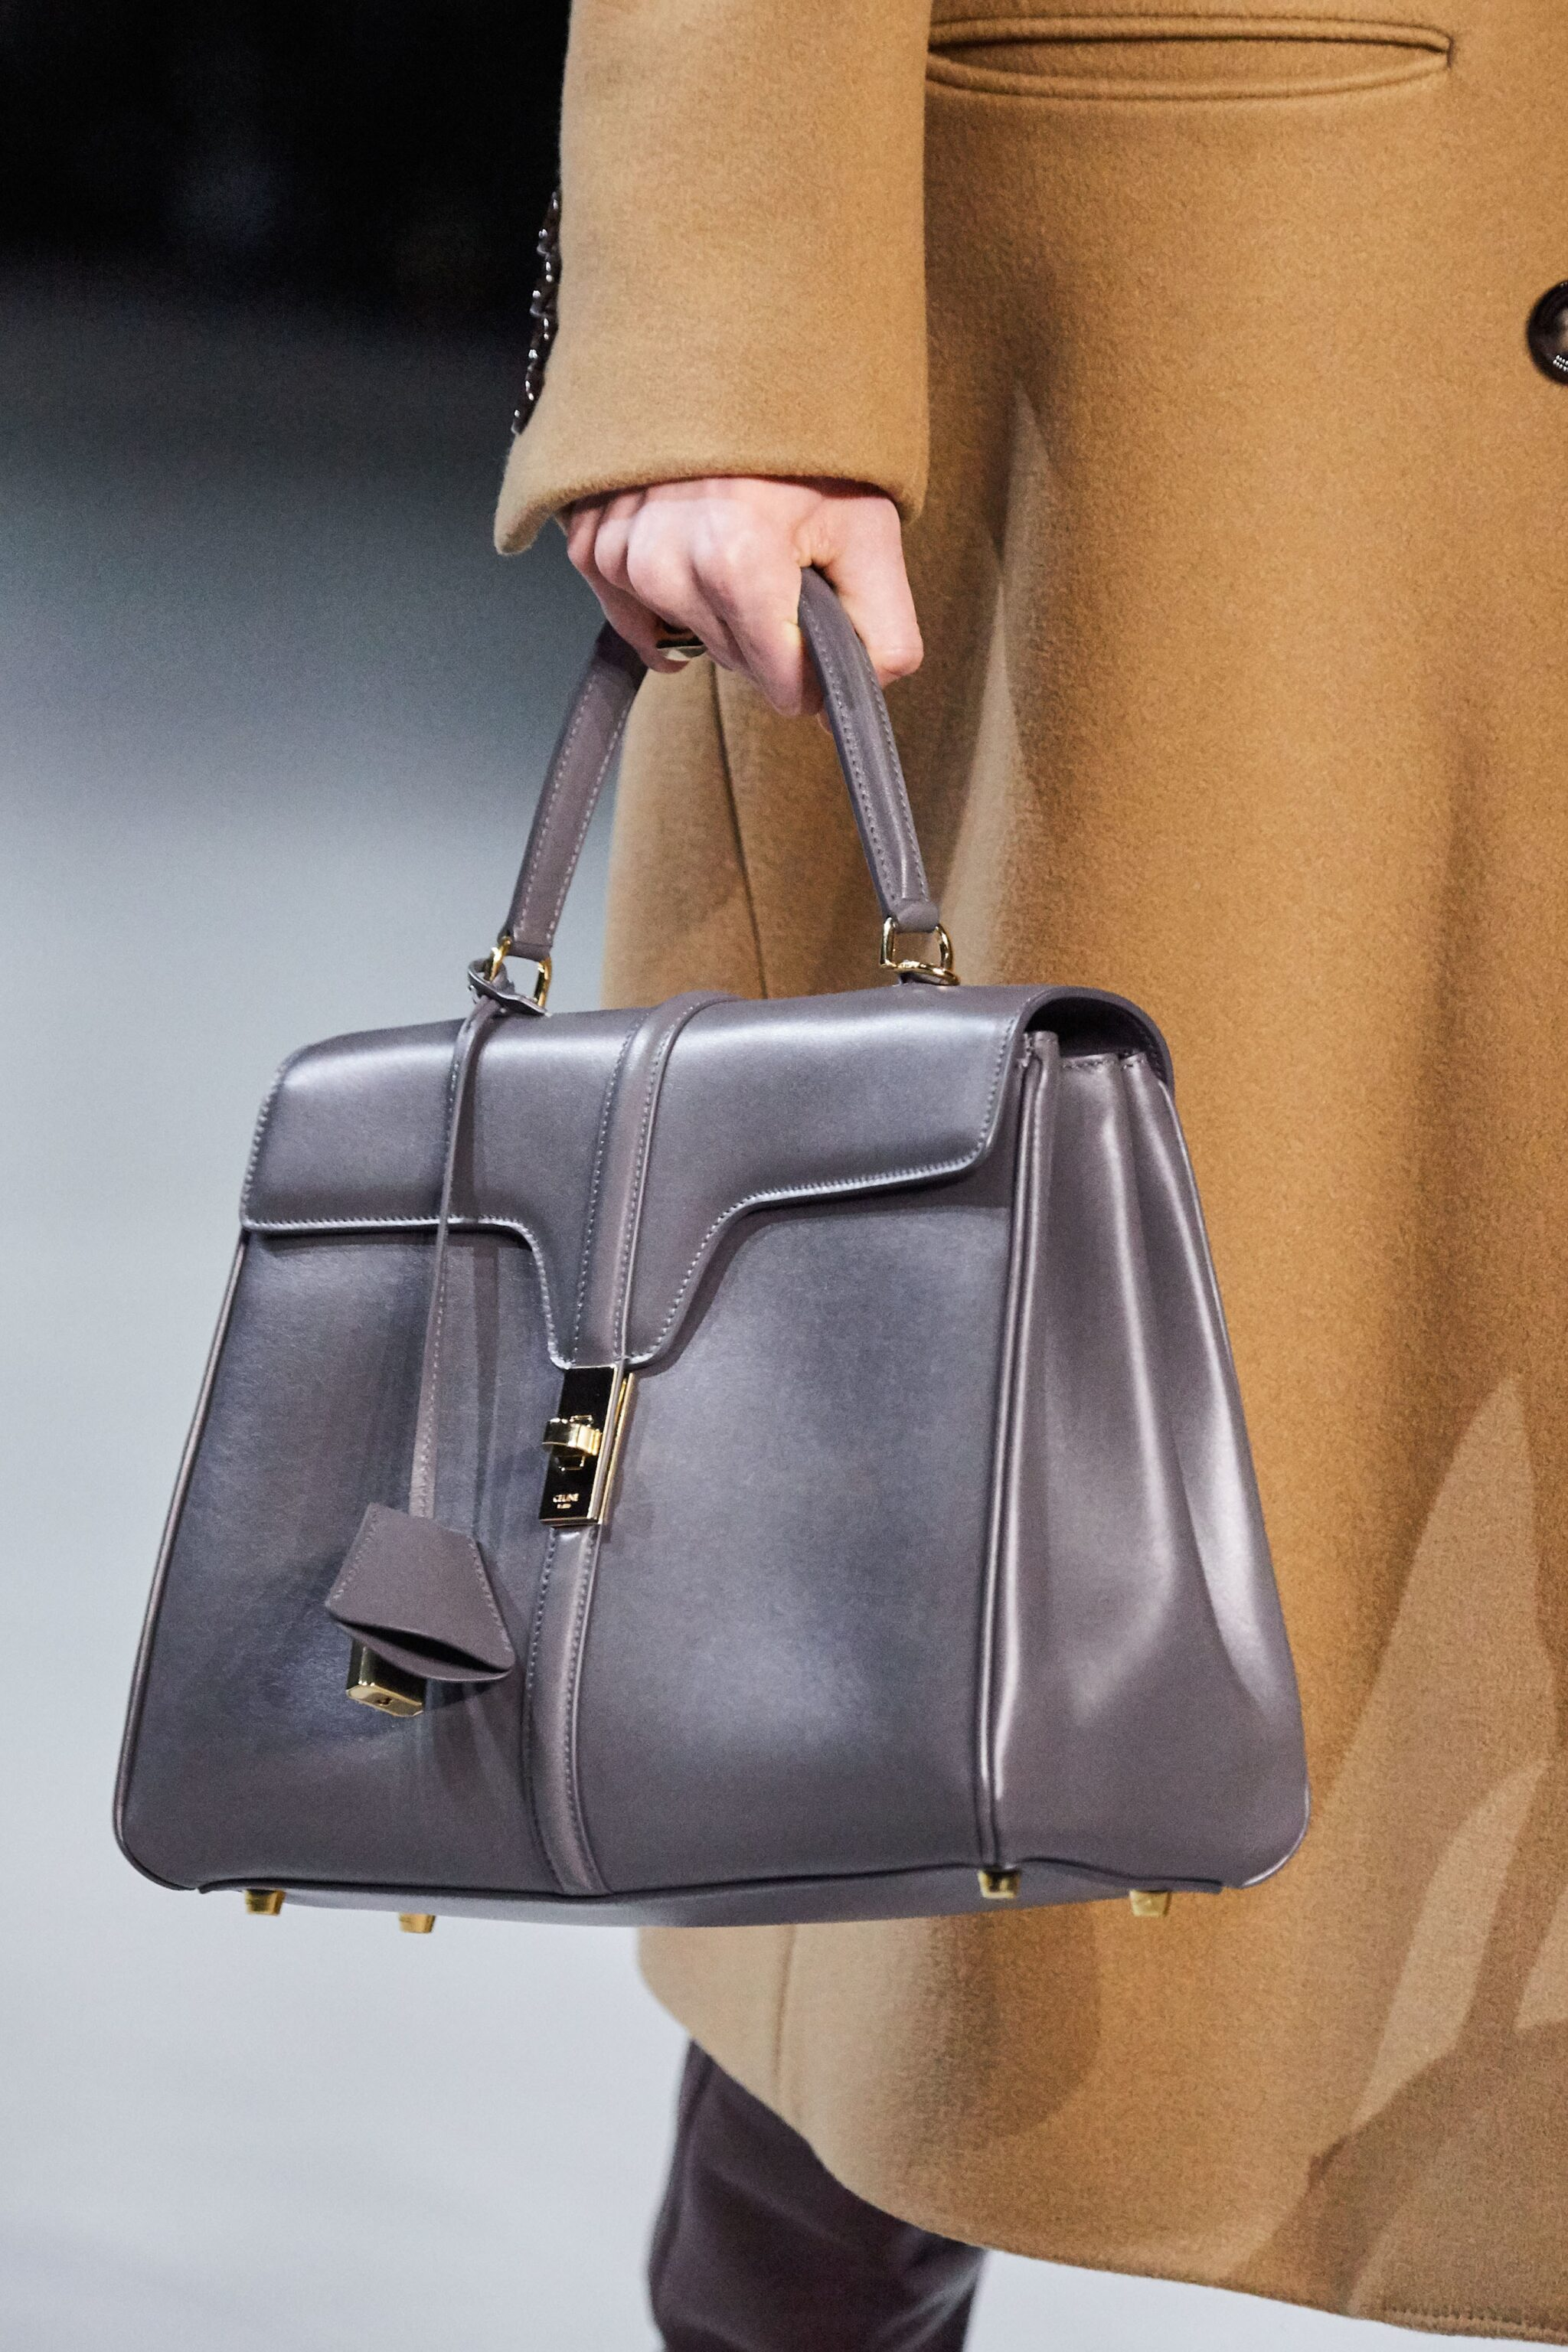 Celine FallWinter 2019 Runway Bag Collection Spotted